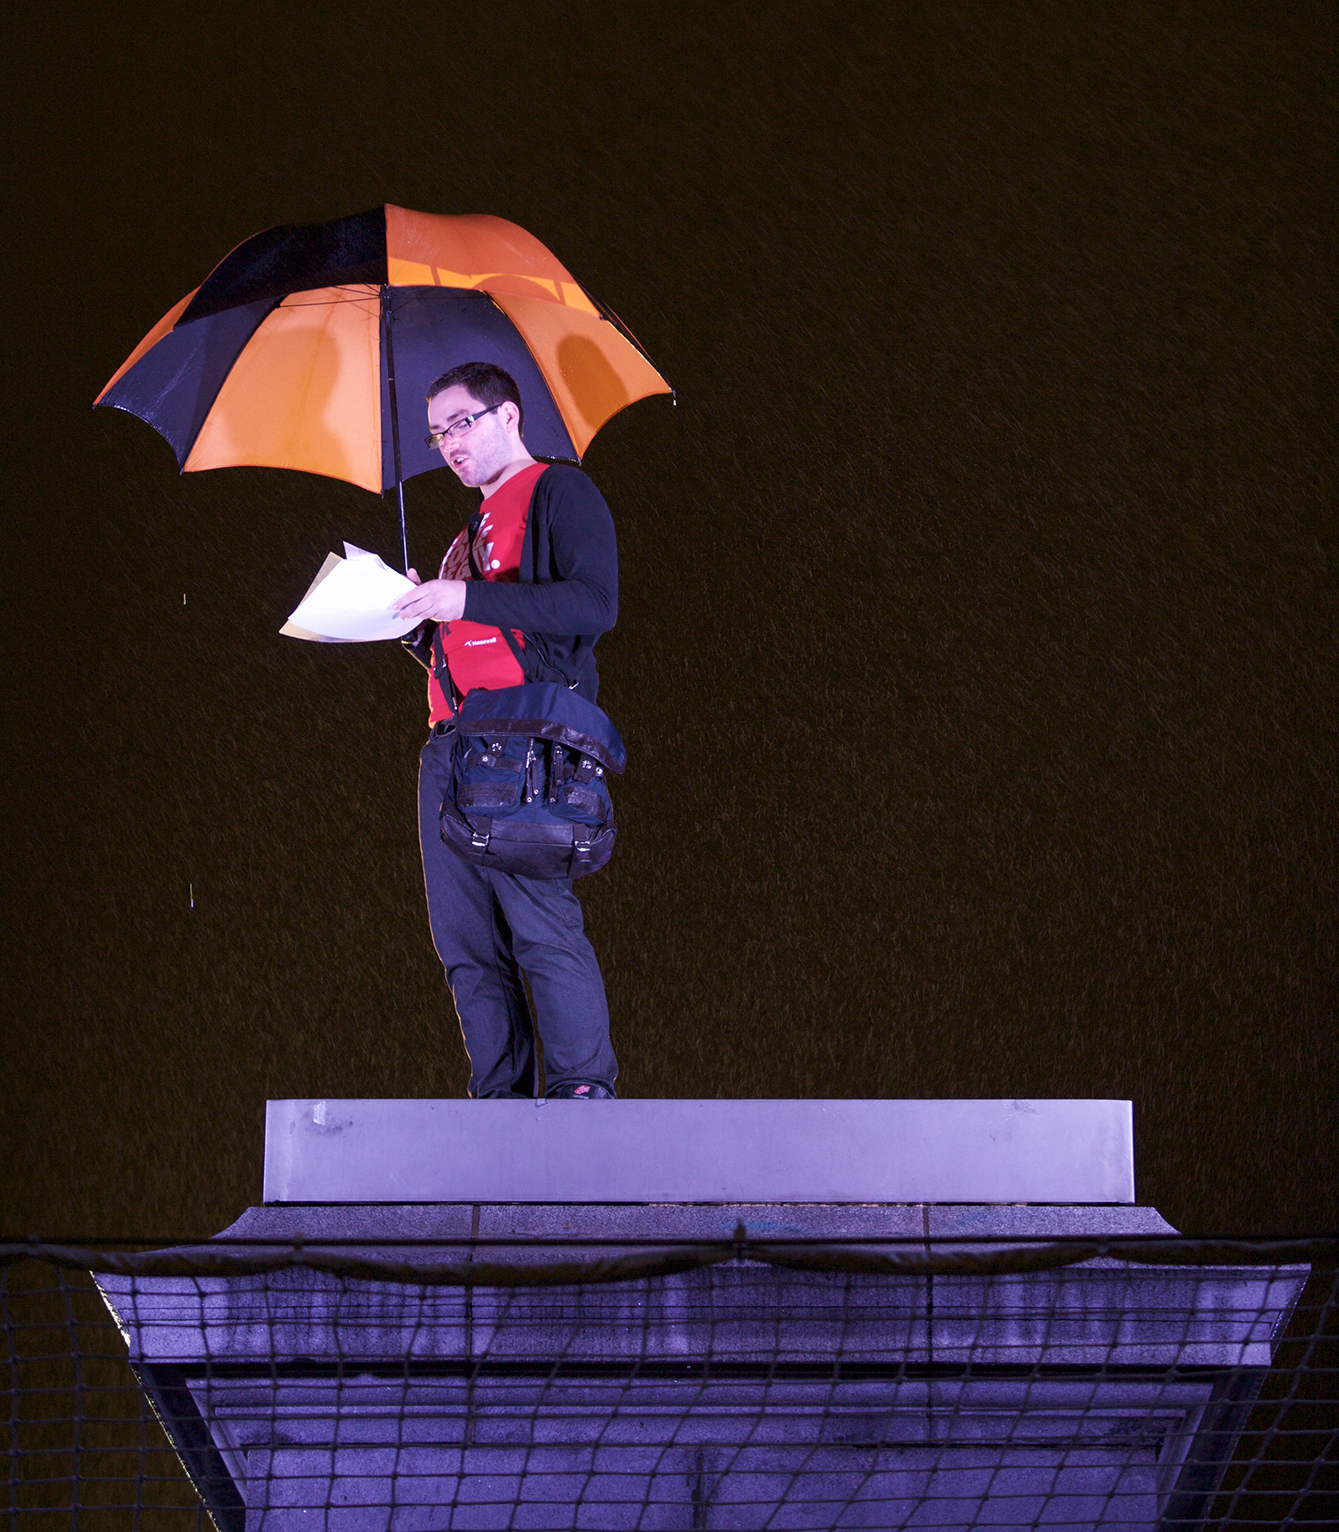 Man standing on the Fourth Plinth at night with umbrella